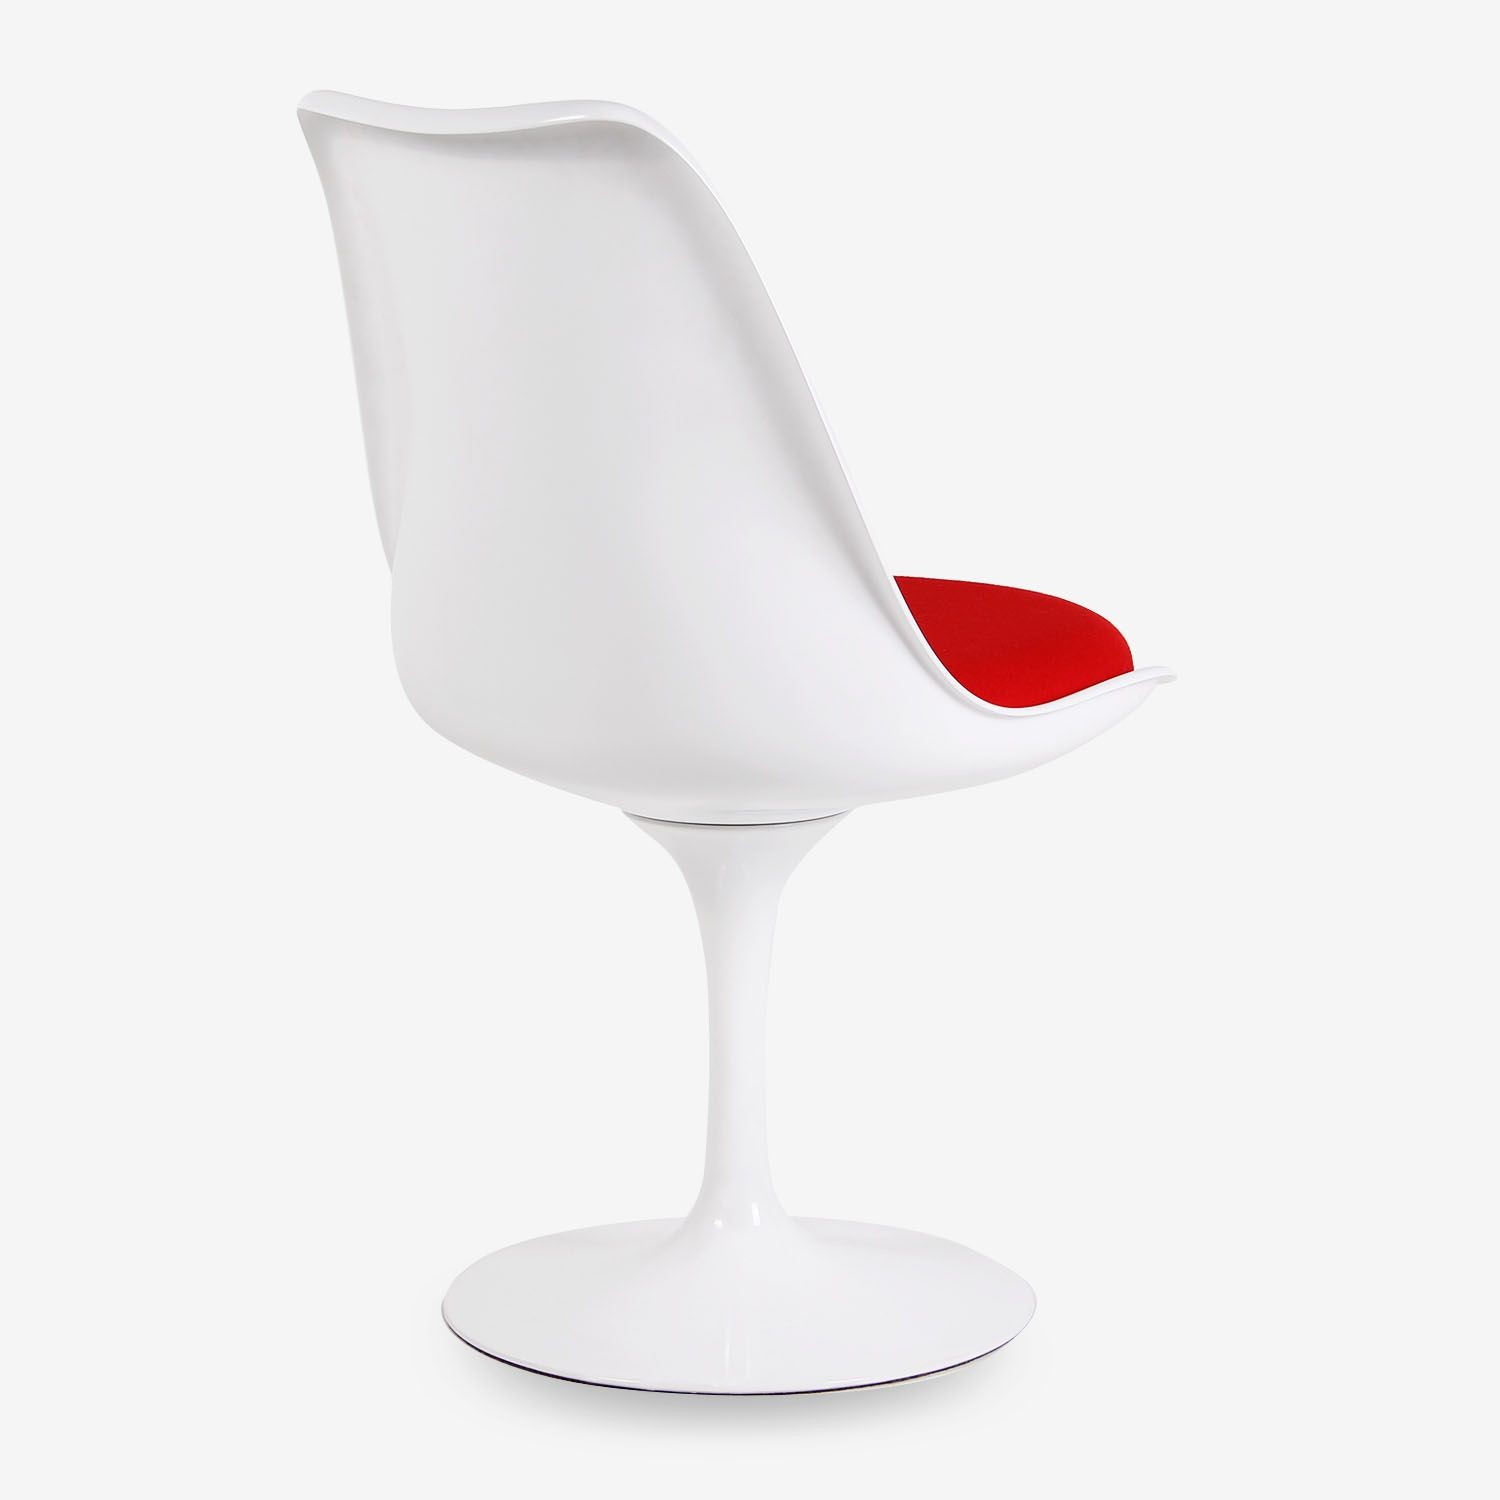 Tulip Chair Molded ABS Plastic